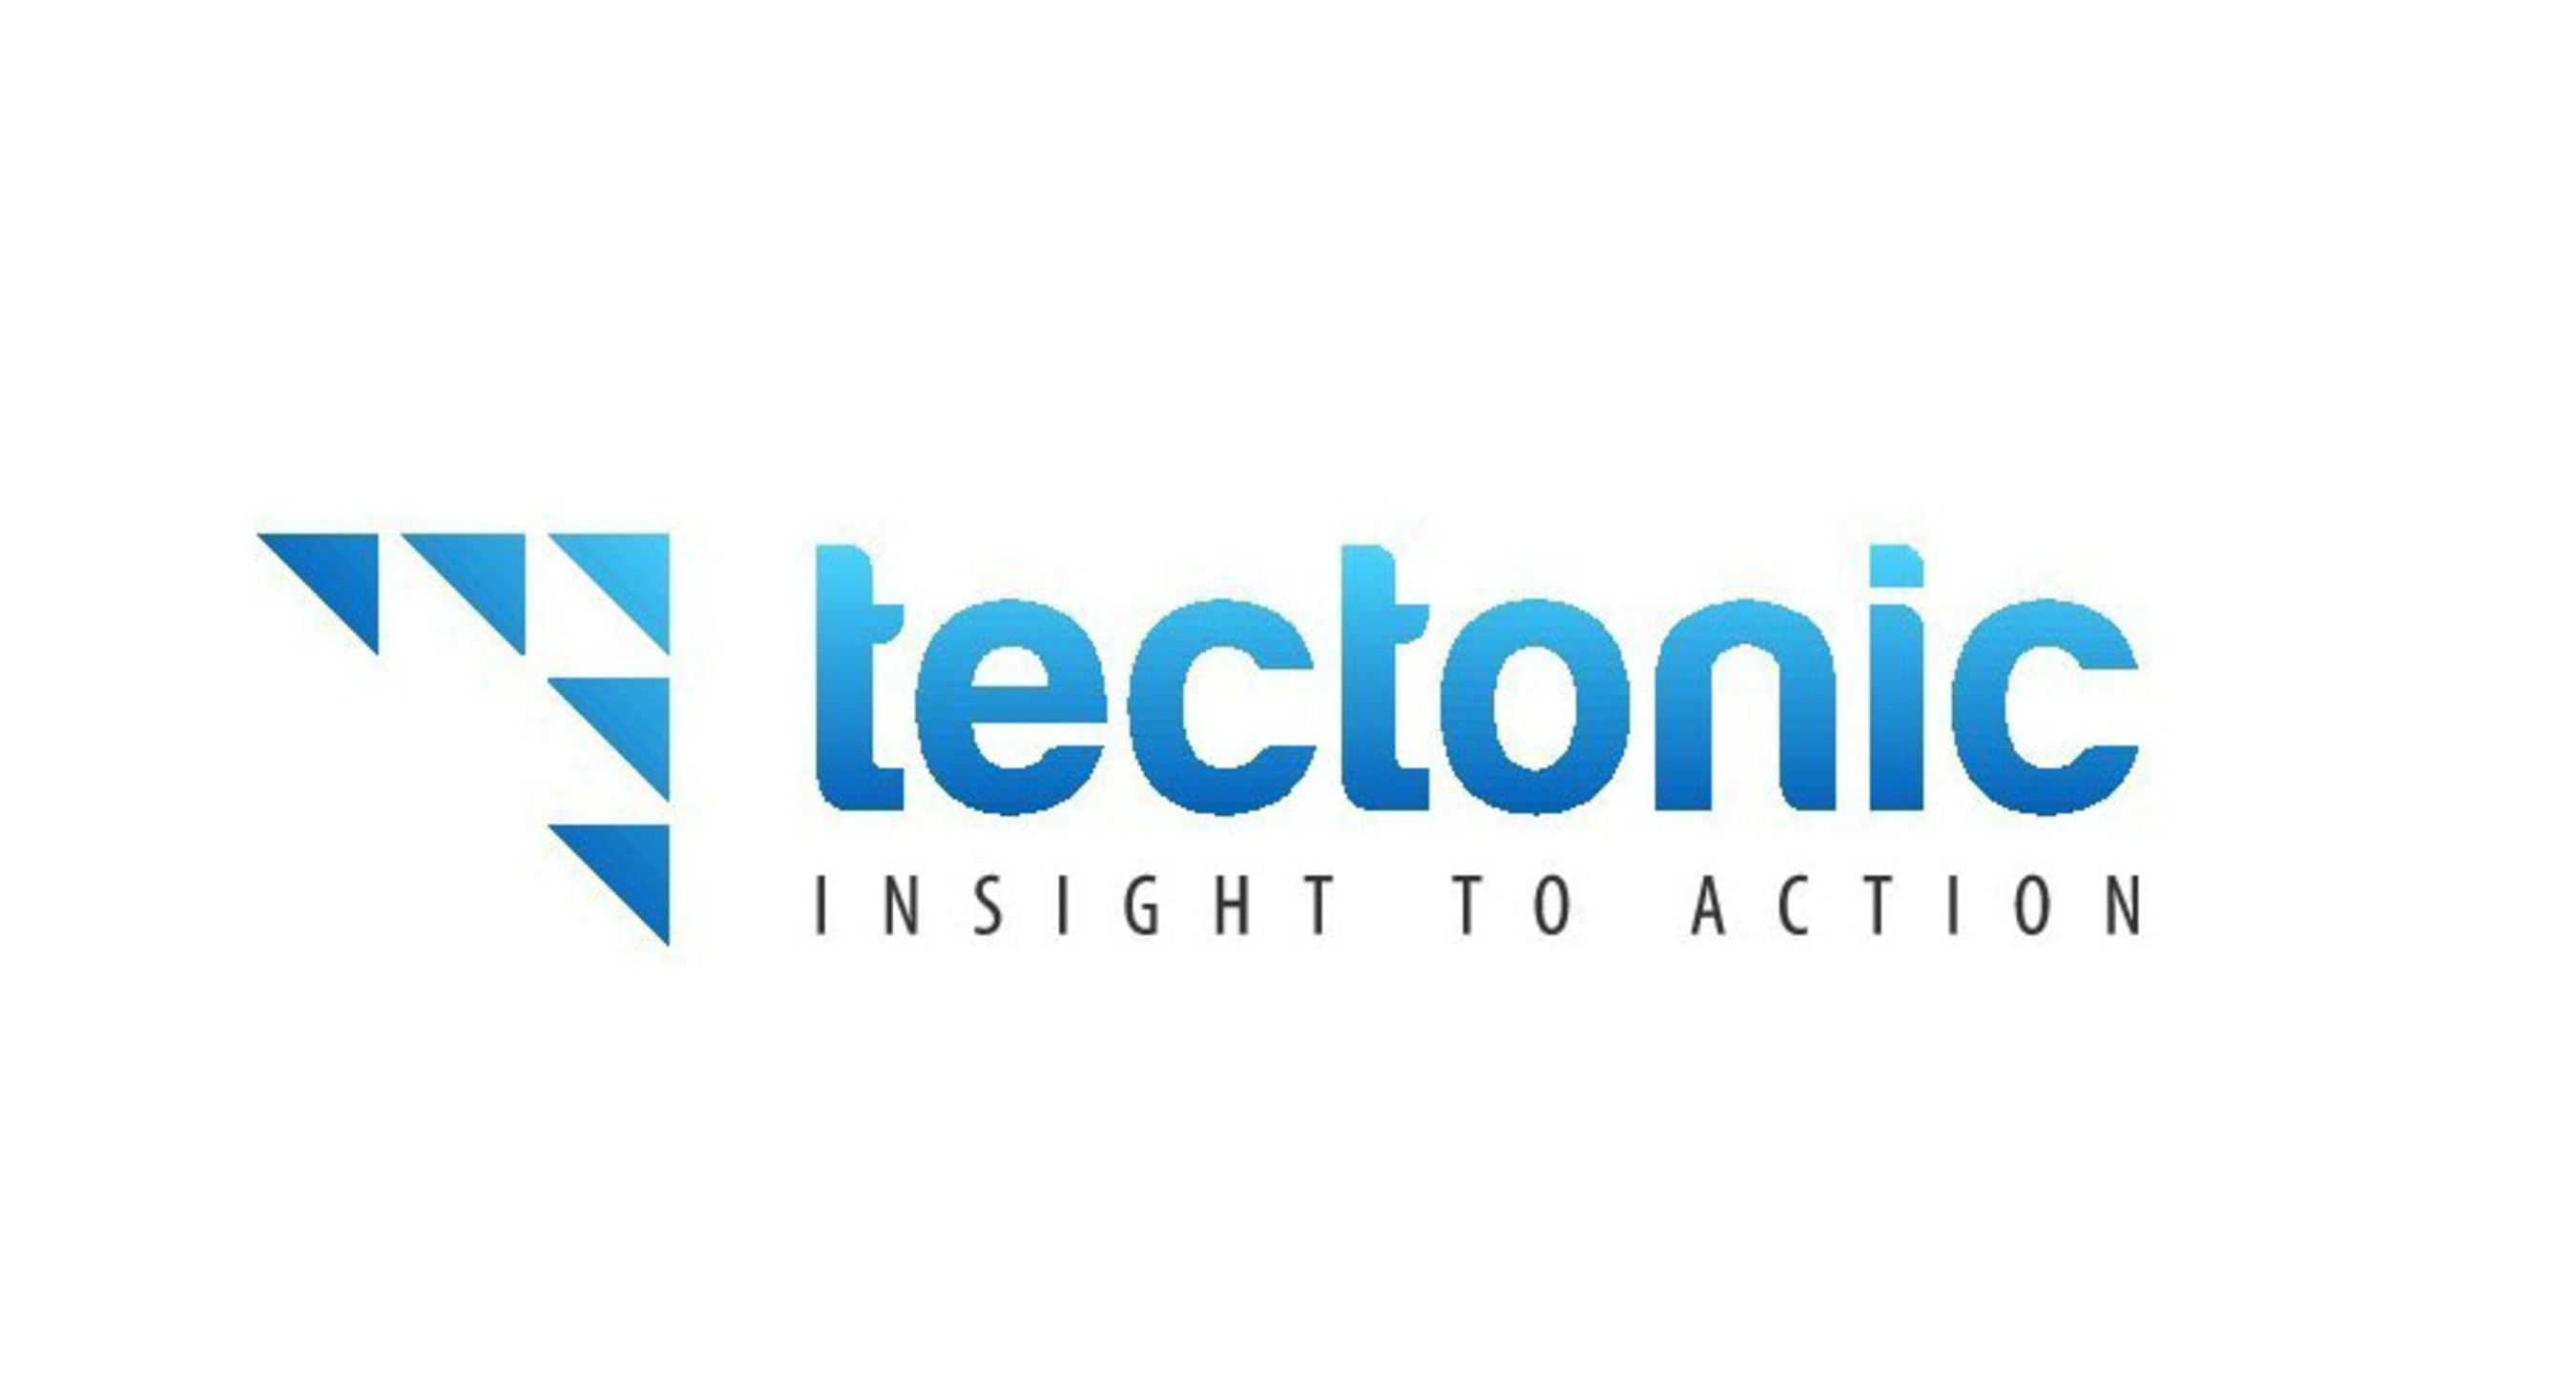 Tectonic Announces $2 Million Aggregate Capital Raise, Strengthening the Company's Position as the Premier Insight to Action Cloud Technology Consulting Leader